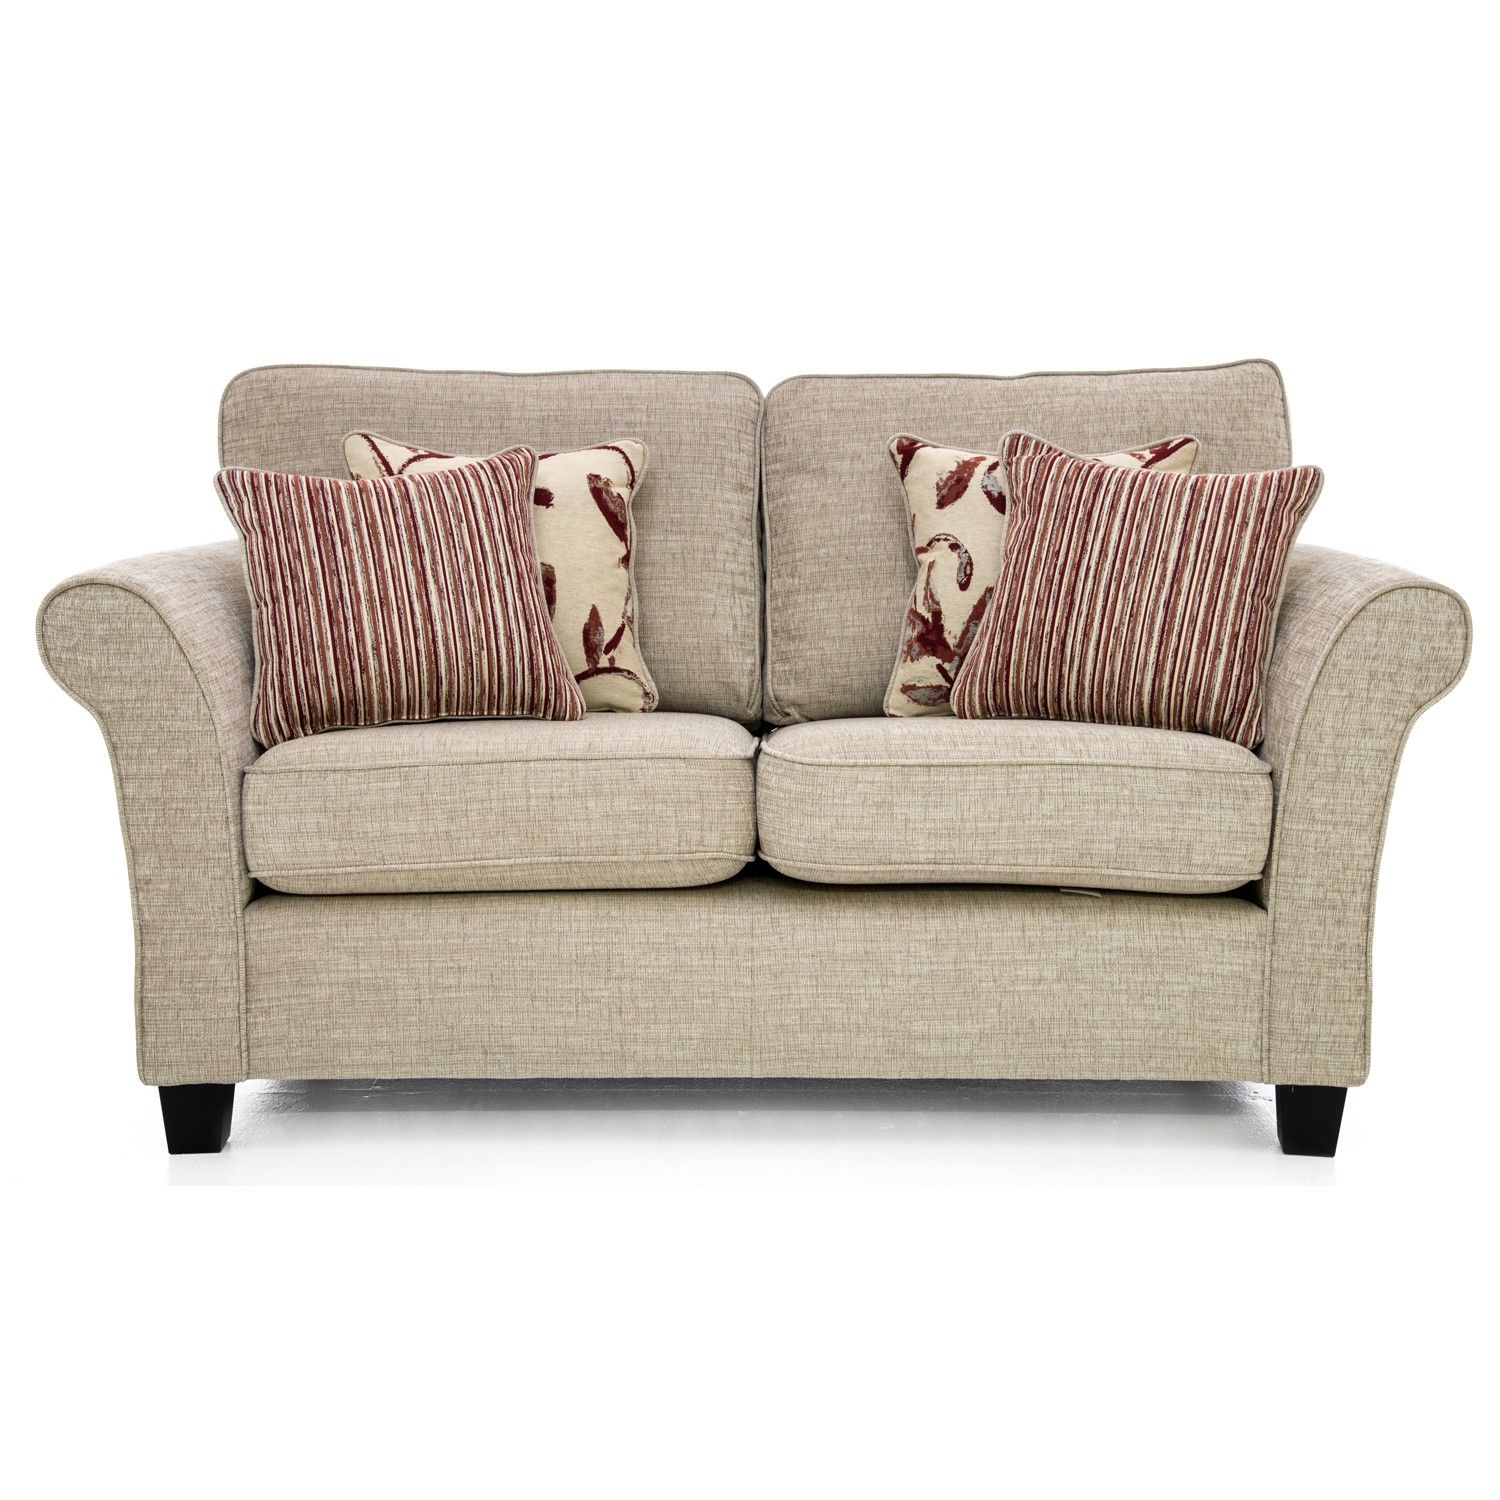 Casa Lucille Small Sofa High Back 2 Seat Corinne Beige